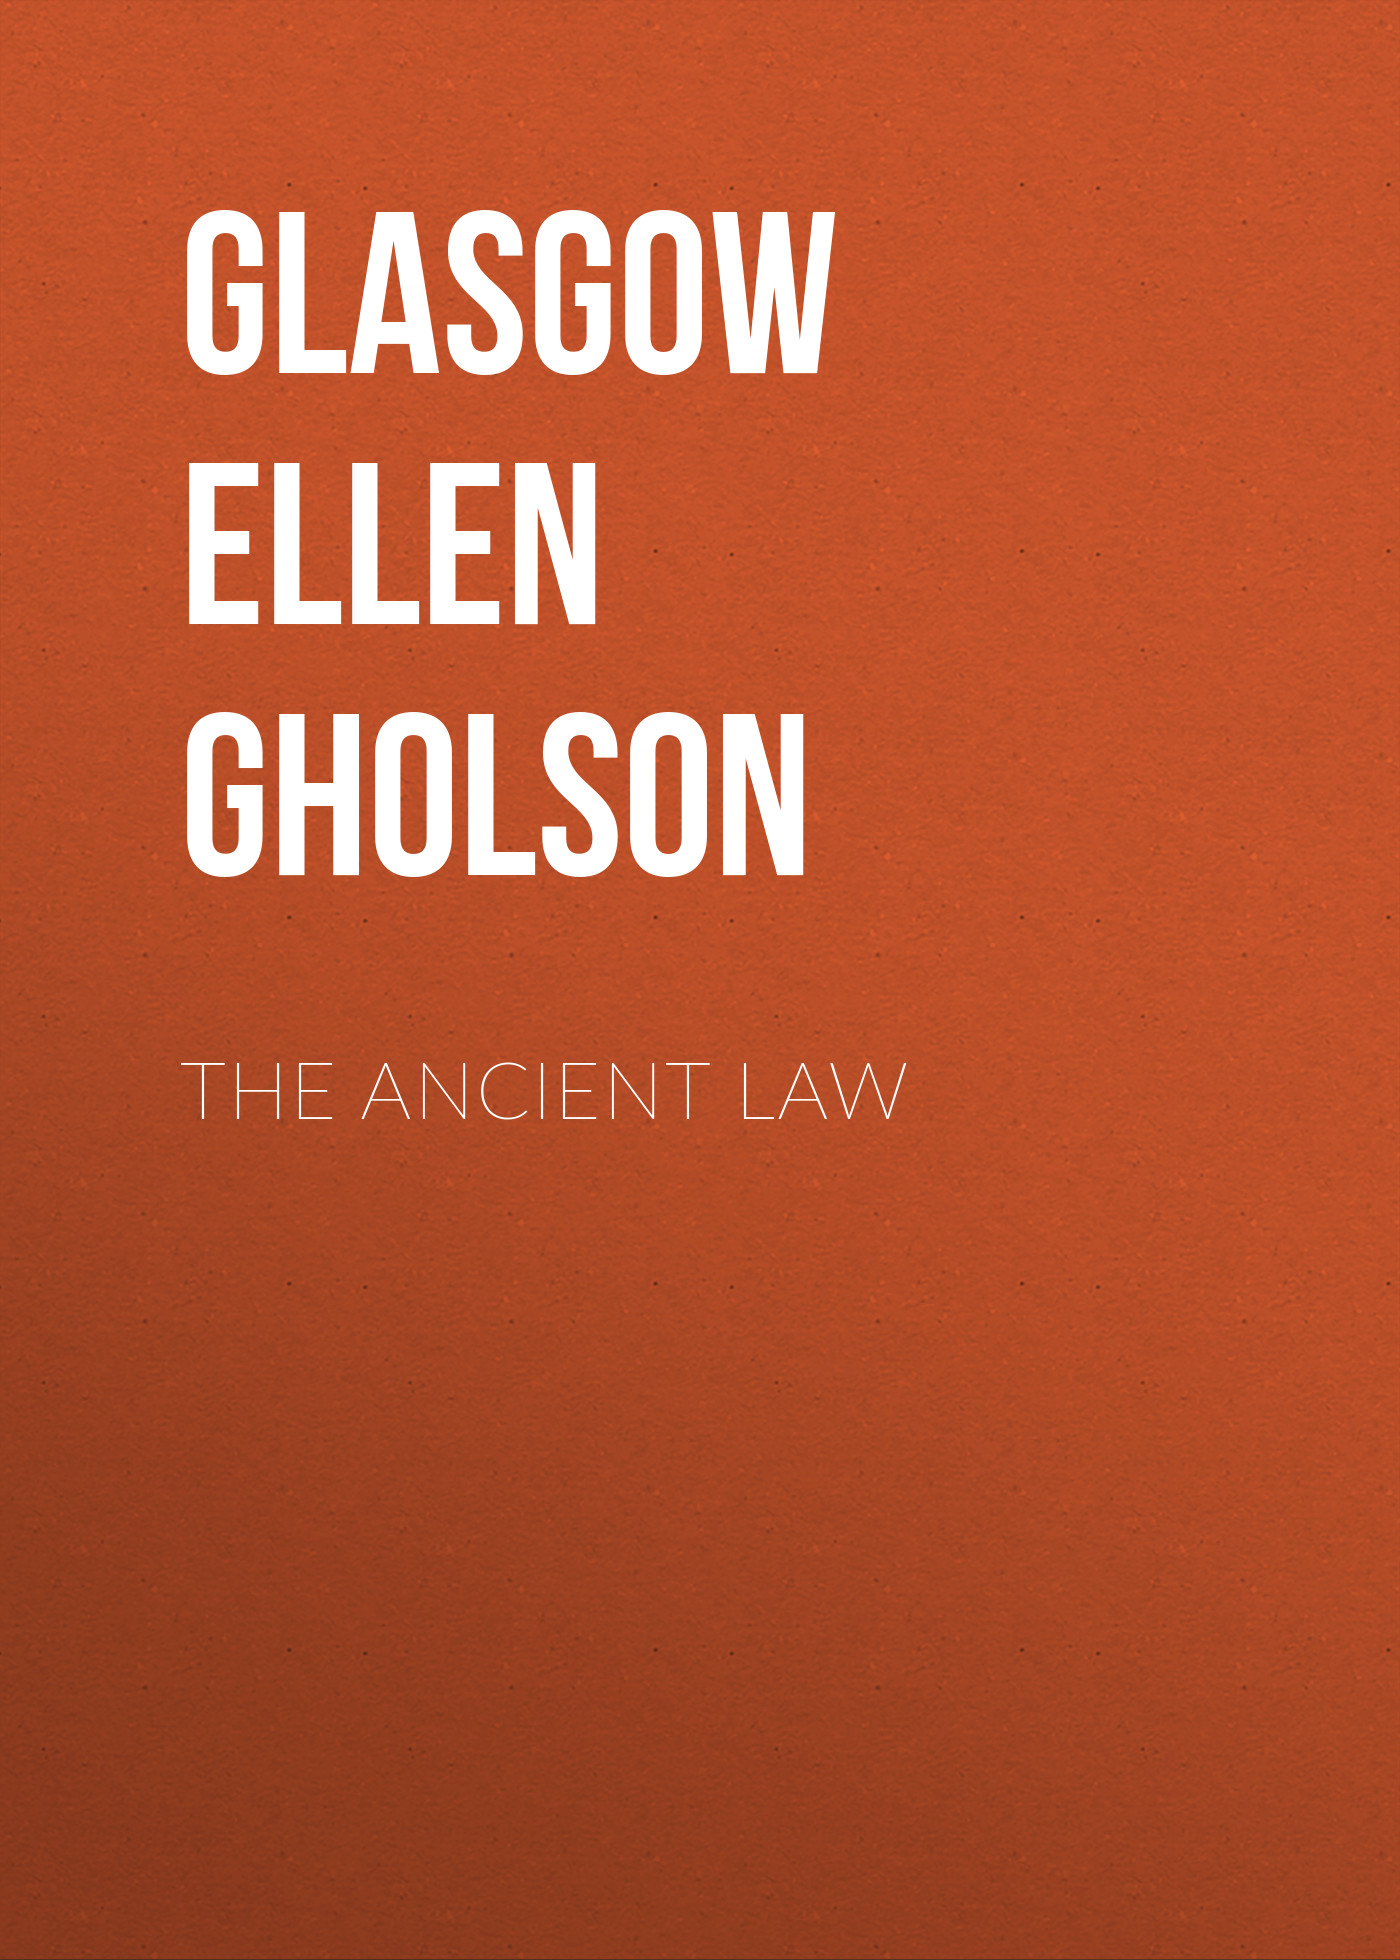 Glasgow Ellen Anderson Gholson The Ancient Law boyzone glasgow